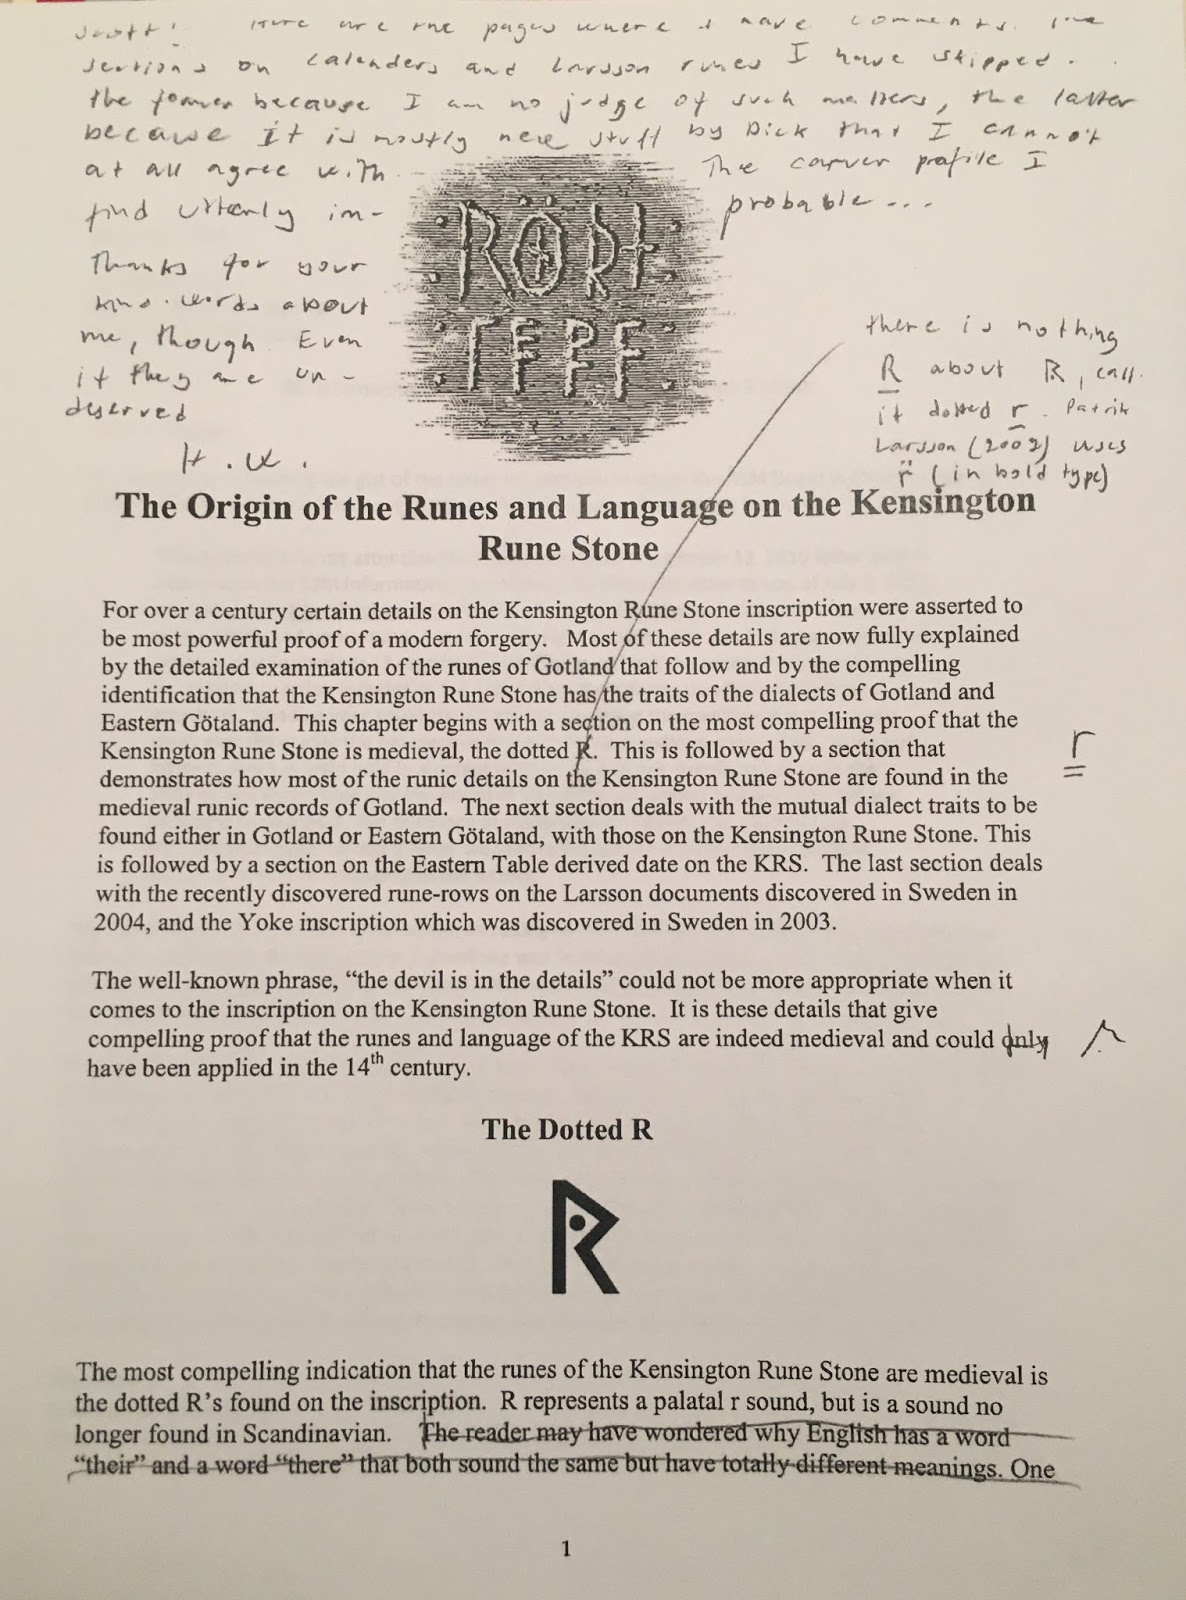 Scott wolter answers kensington rune stone deception disguised as this is the first of forty pages of professor henrik williams written peer review of the runes and language chapter of the book i co authored with richard biocorpaavc Choice Image